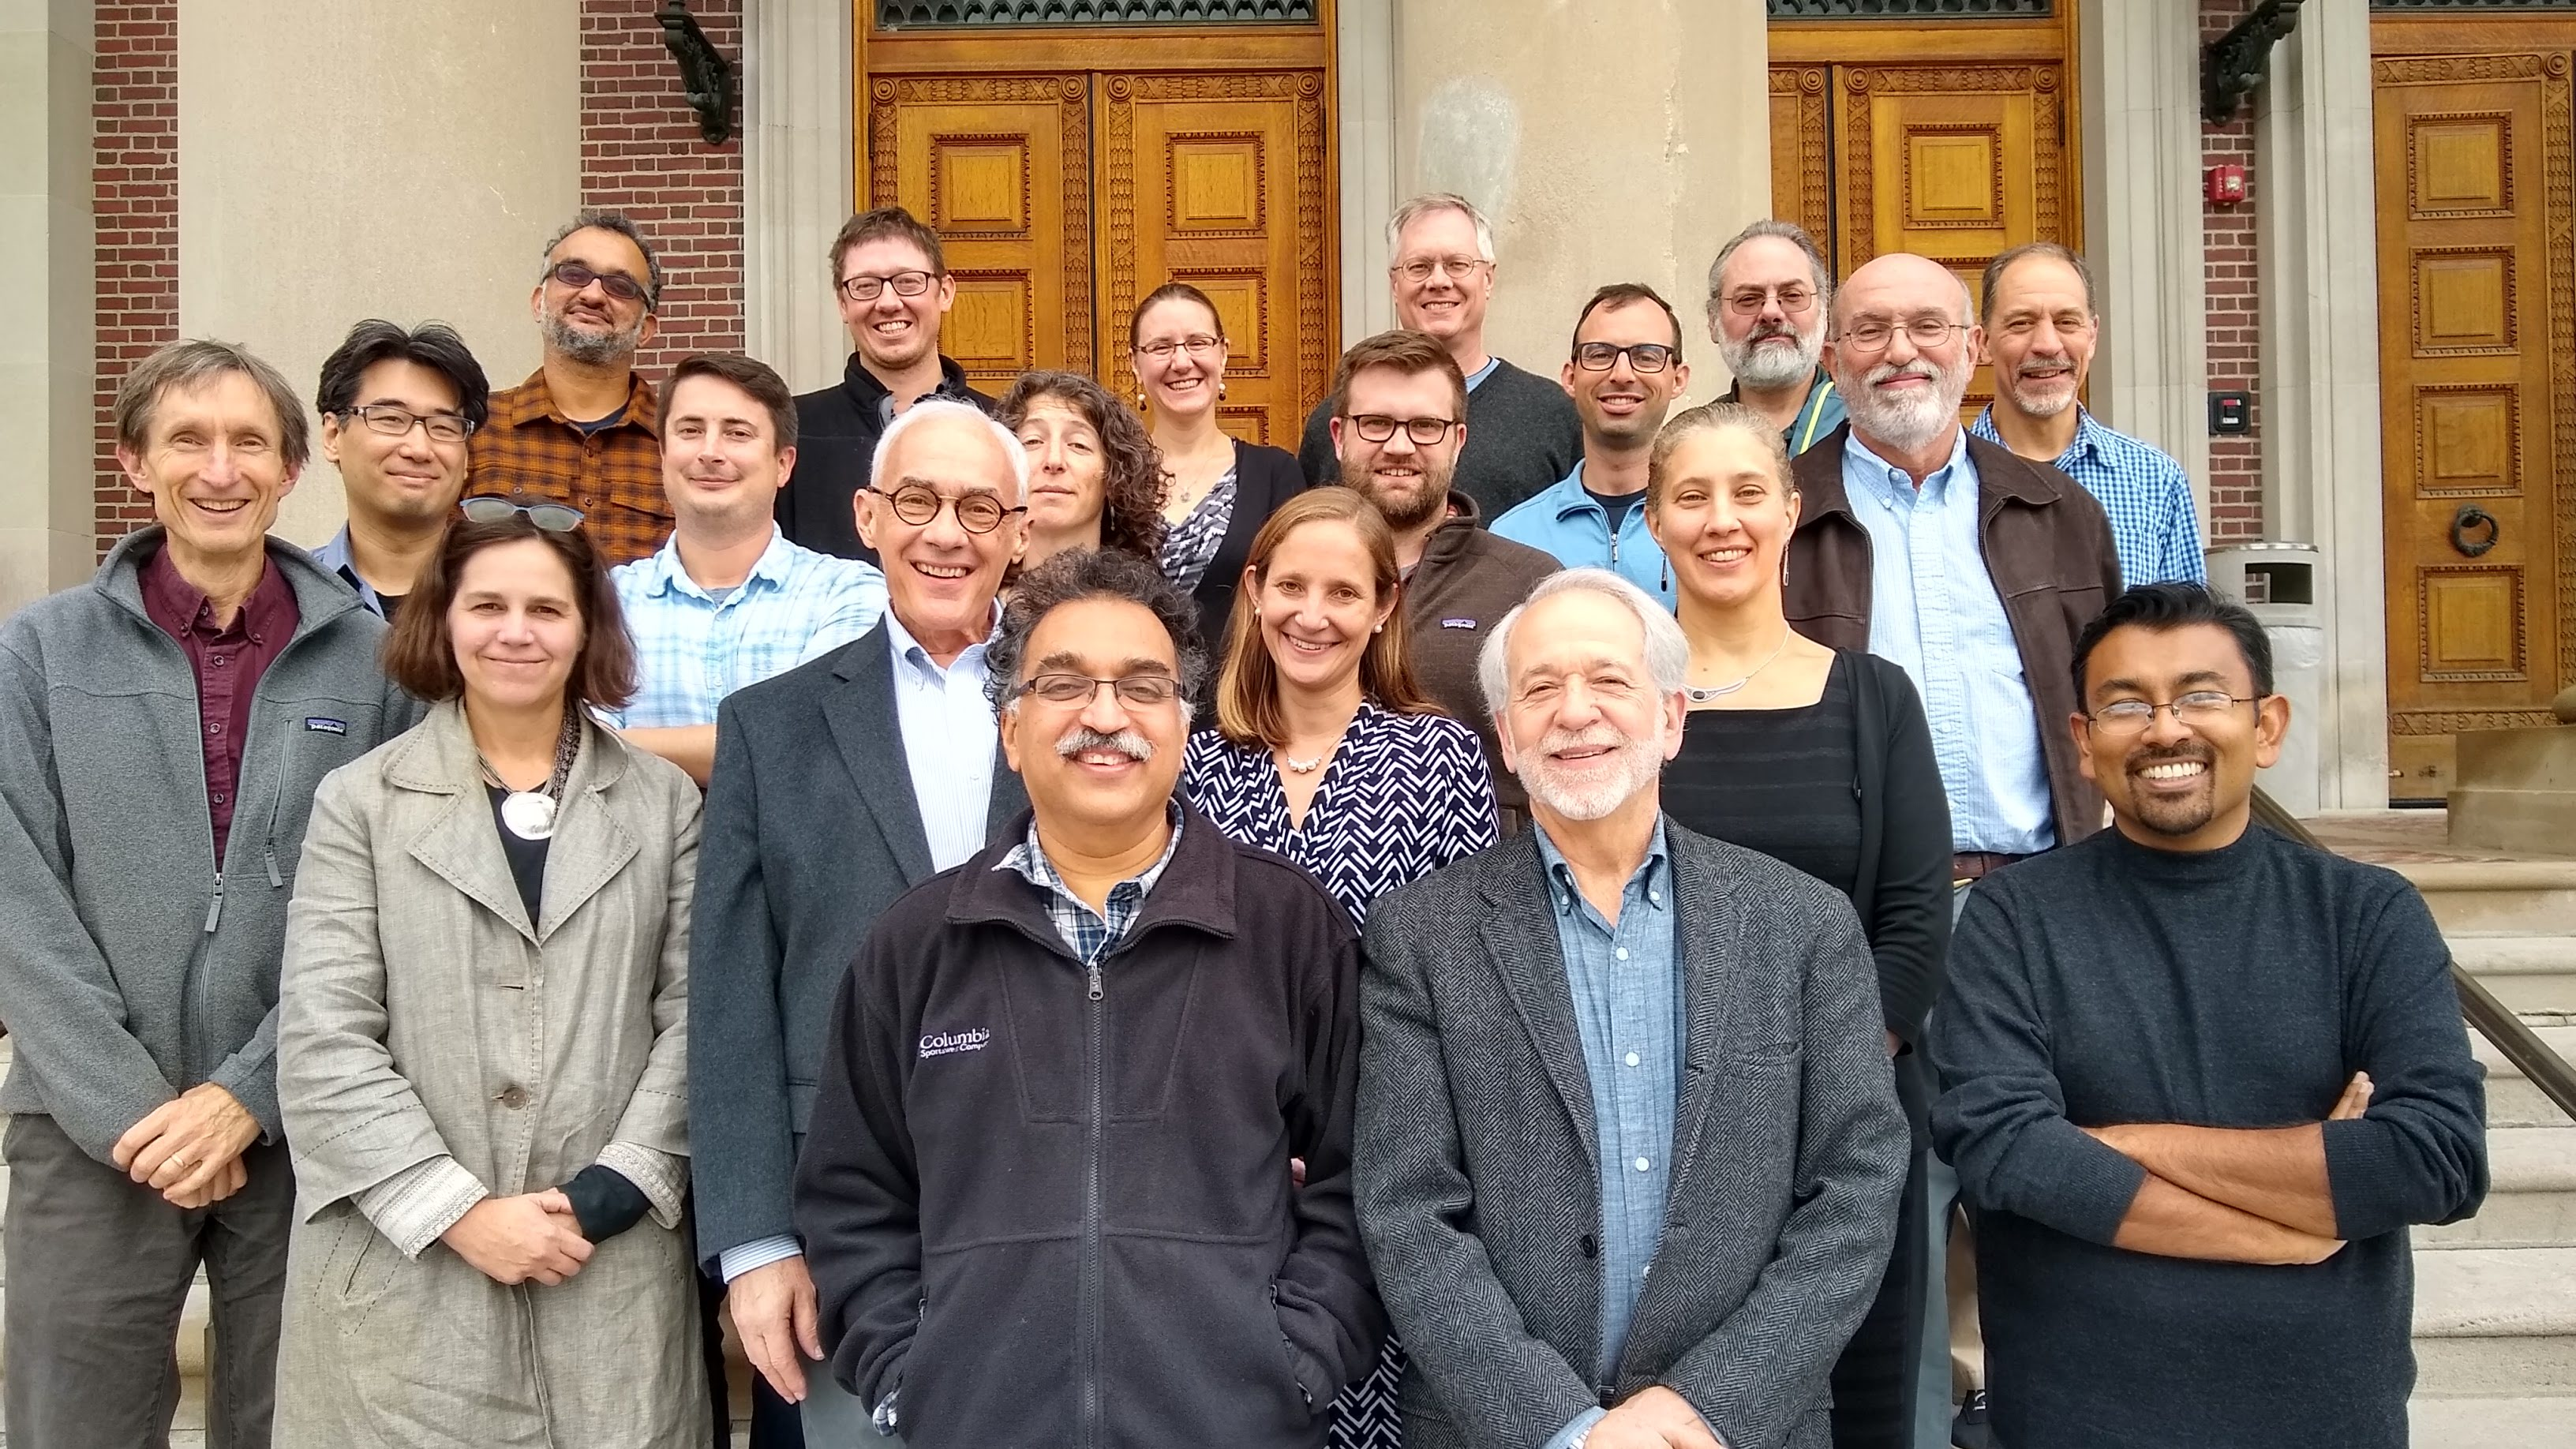 Group photo of economics faculty